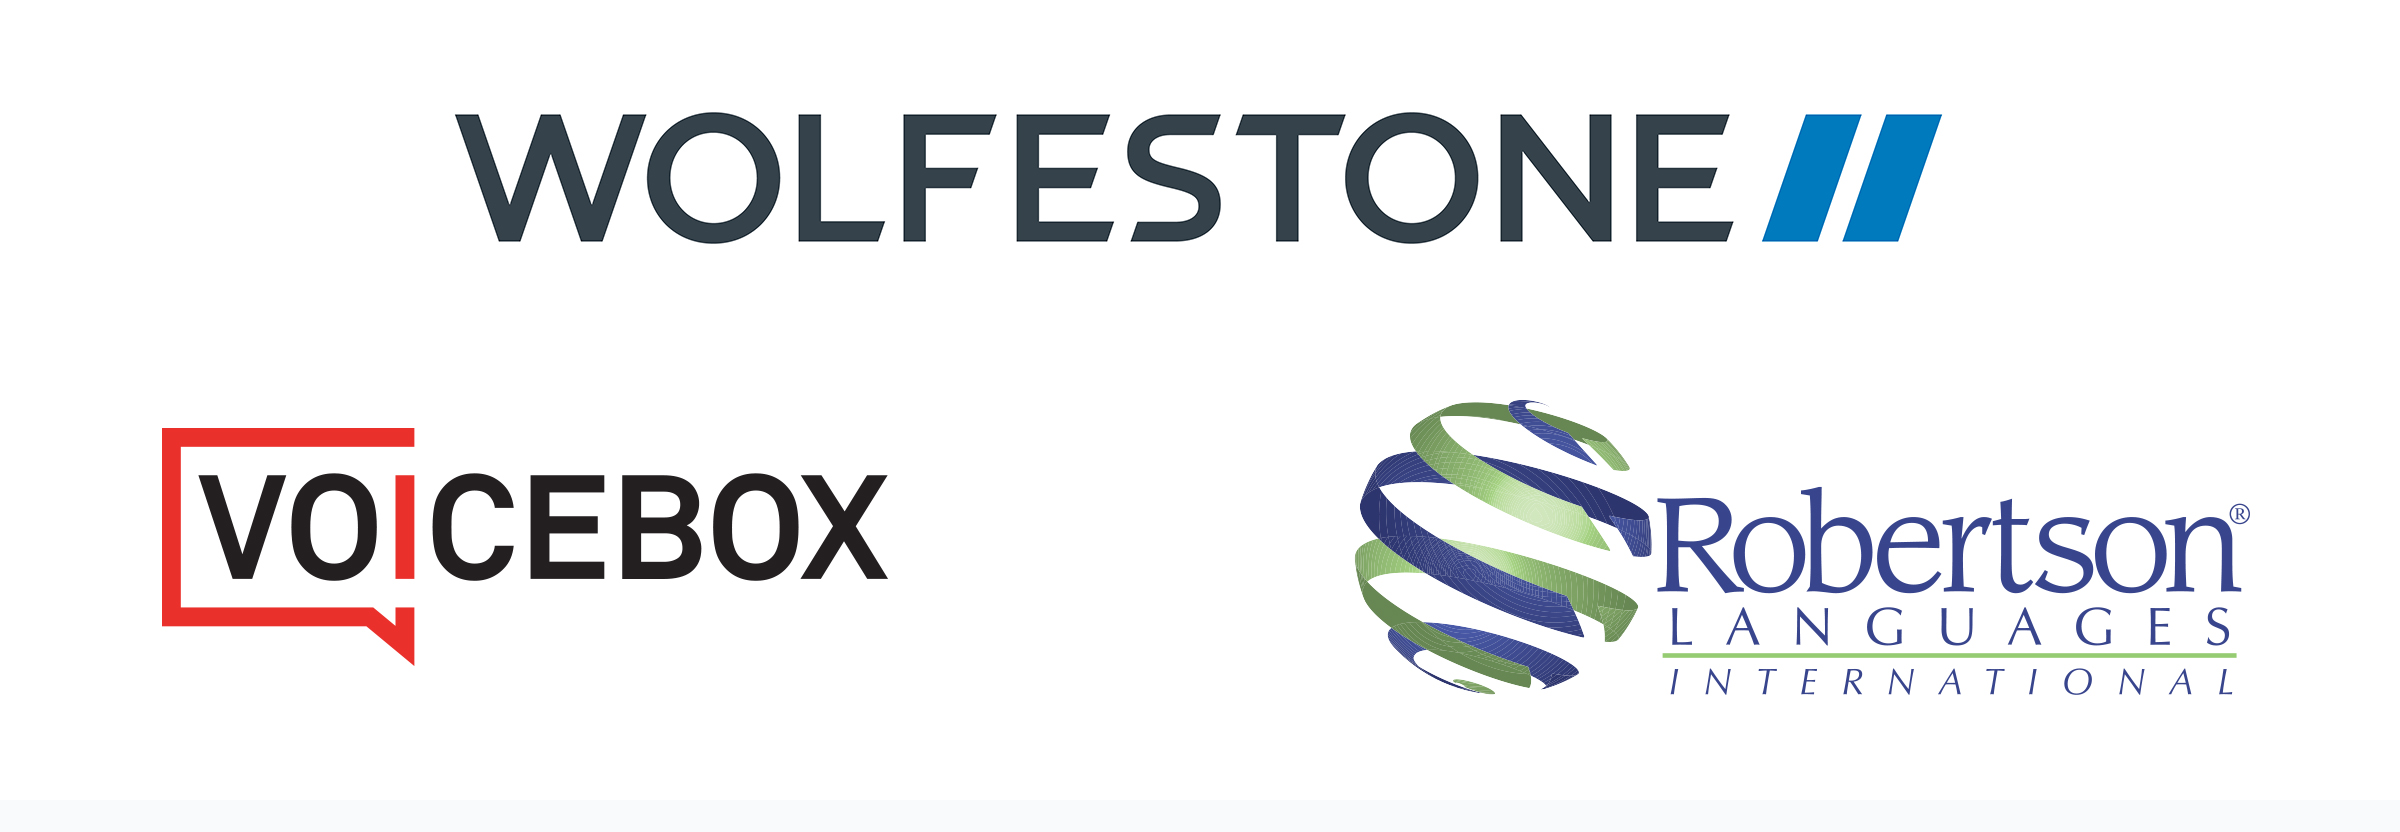 Image of the three brands comprising the Wolfestone Group: Wolfestone, VoiceBox and Robertson Languages International.